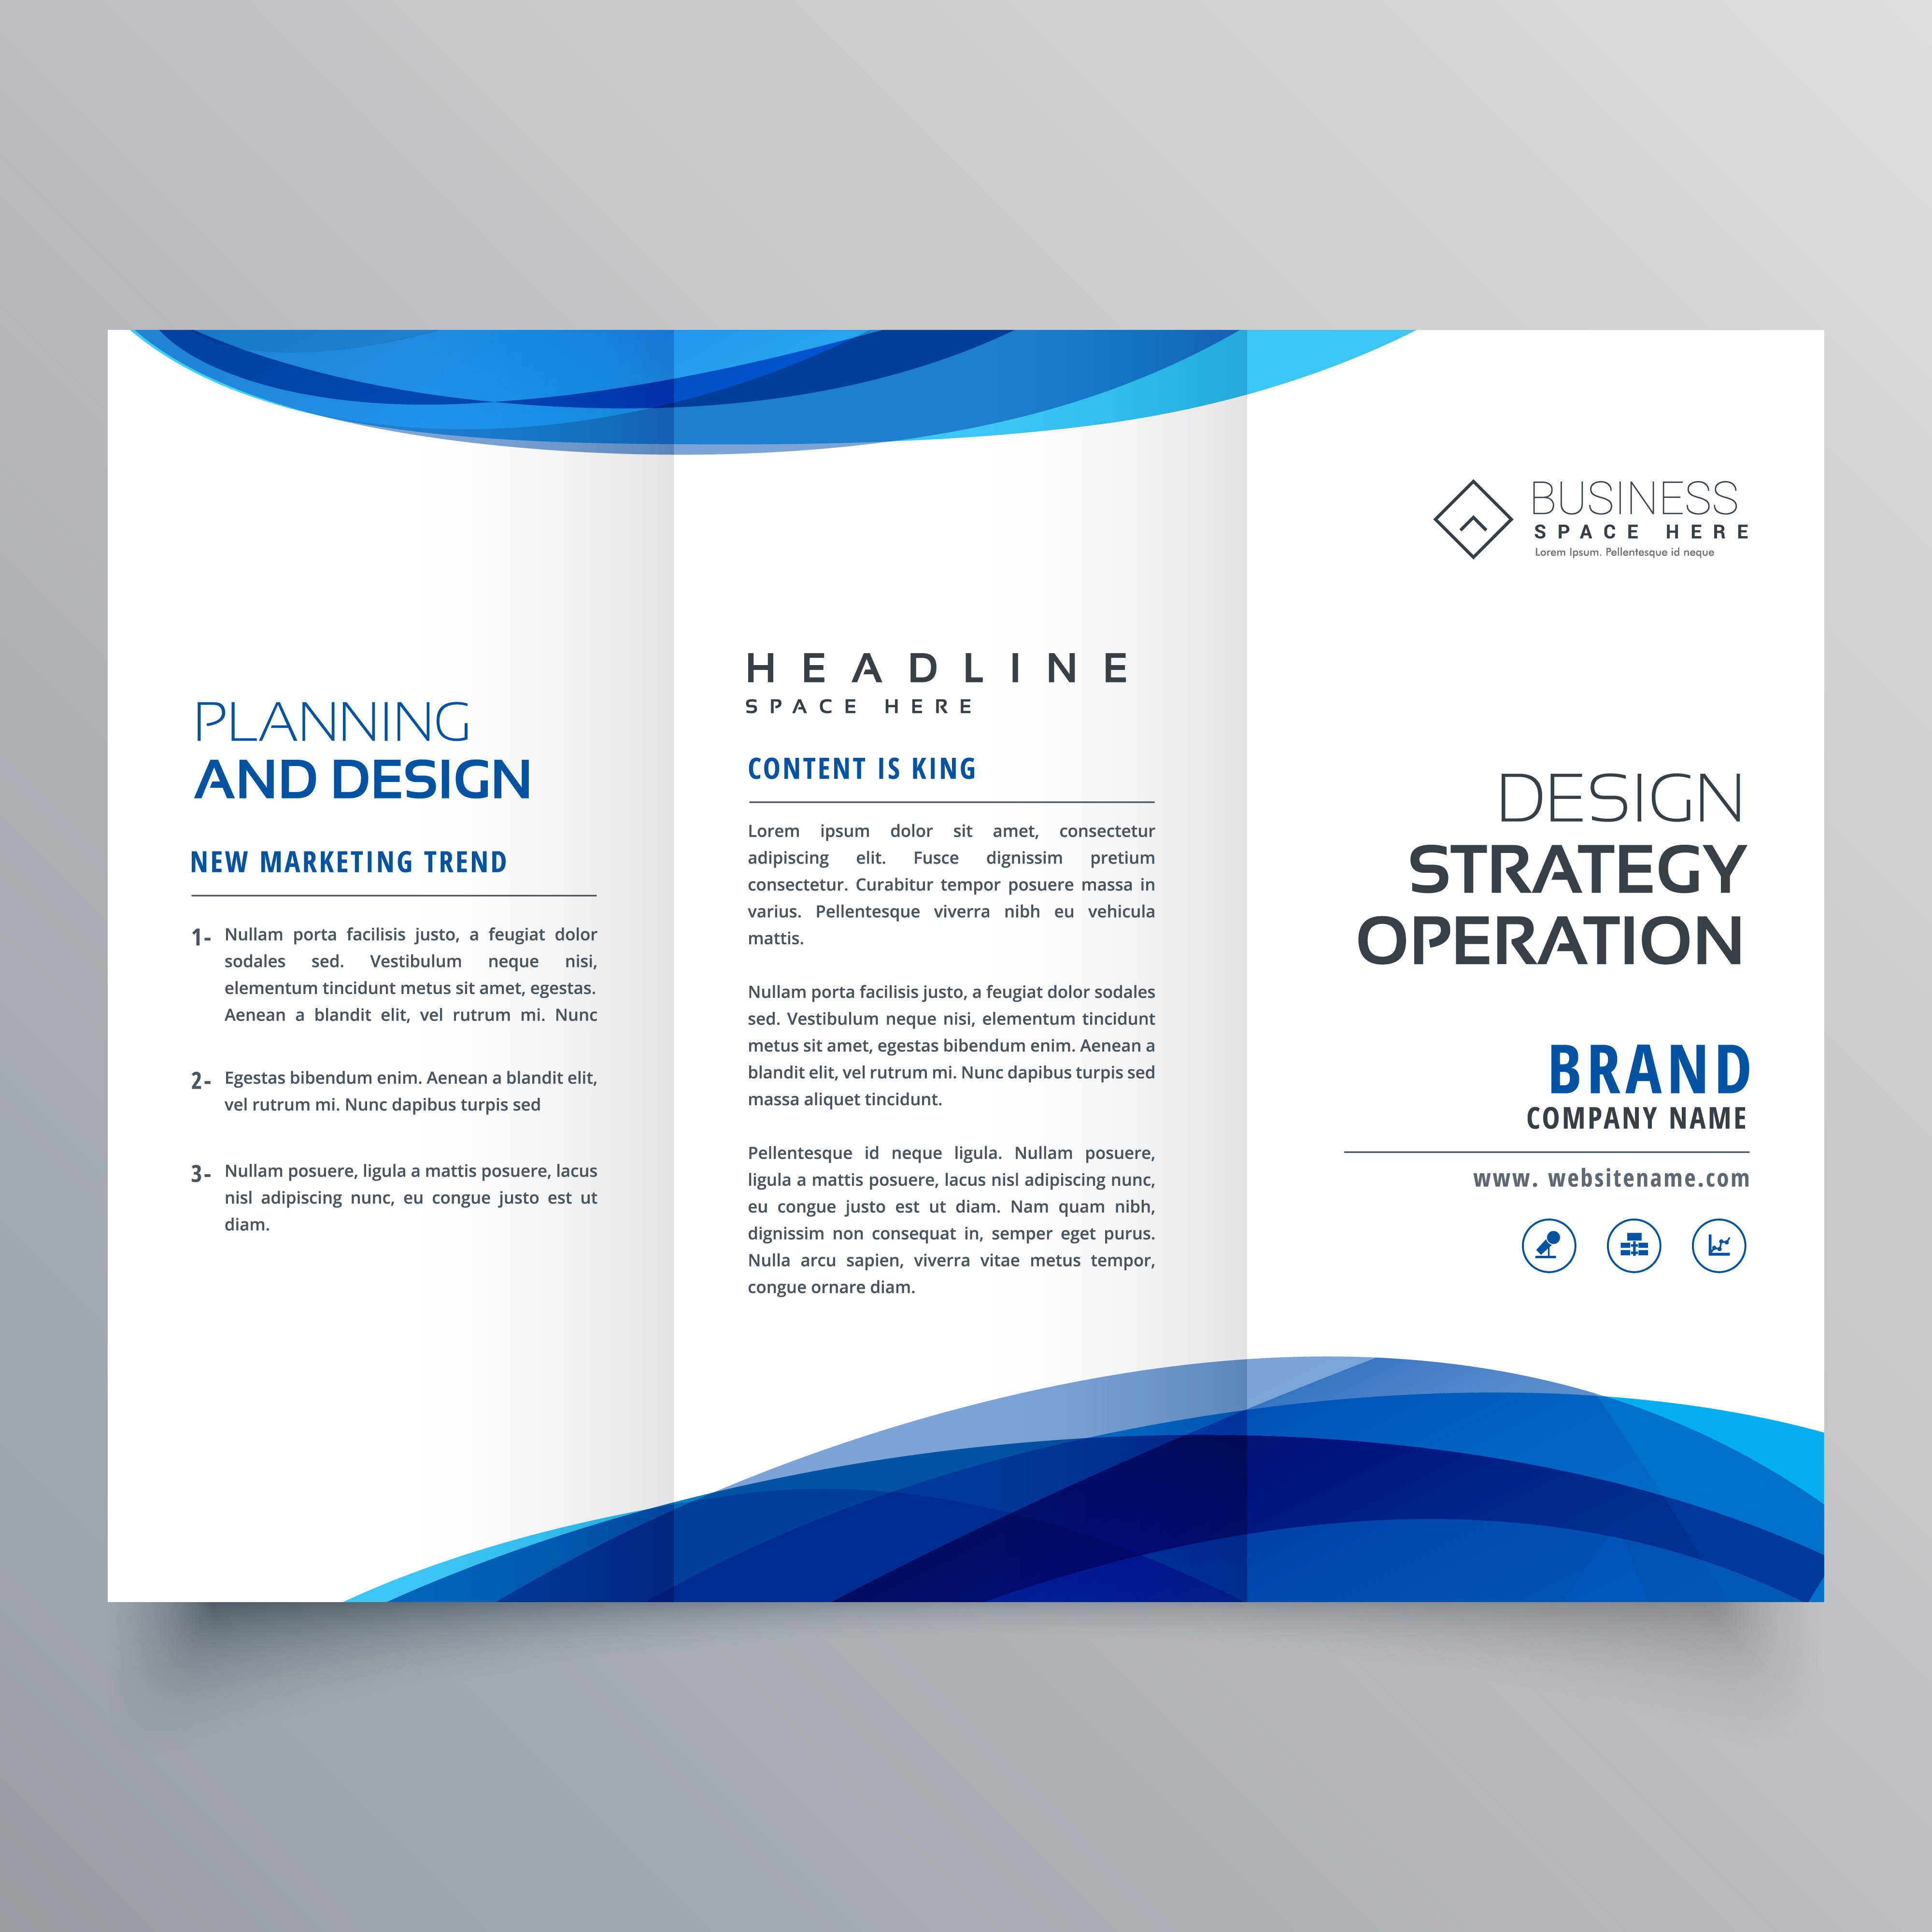 stylish blue wave business brochure template for marketing